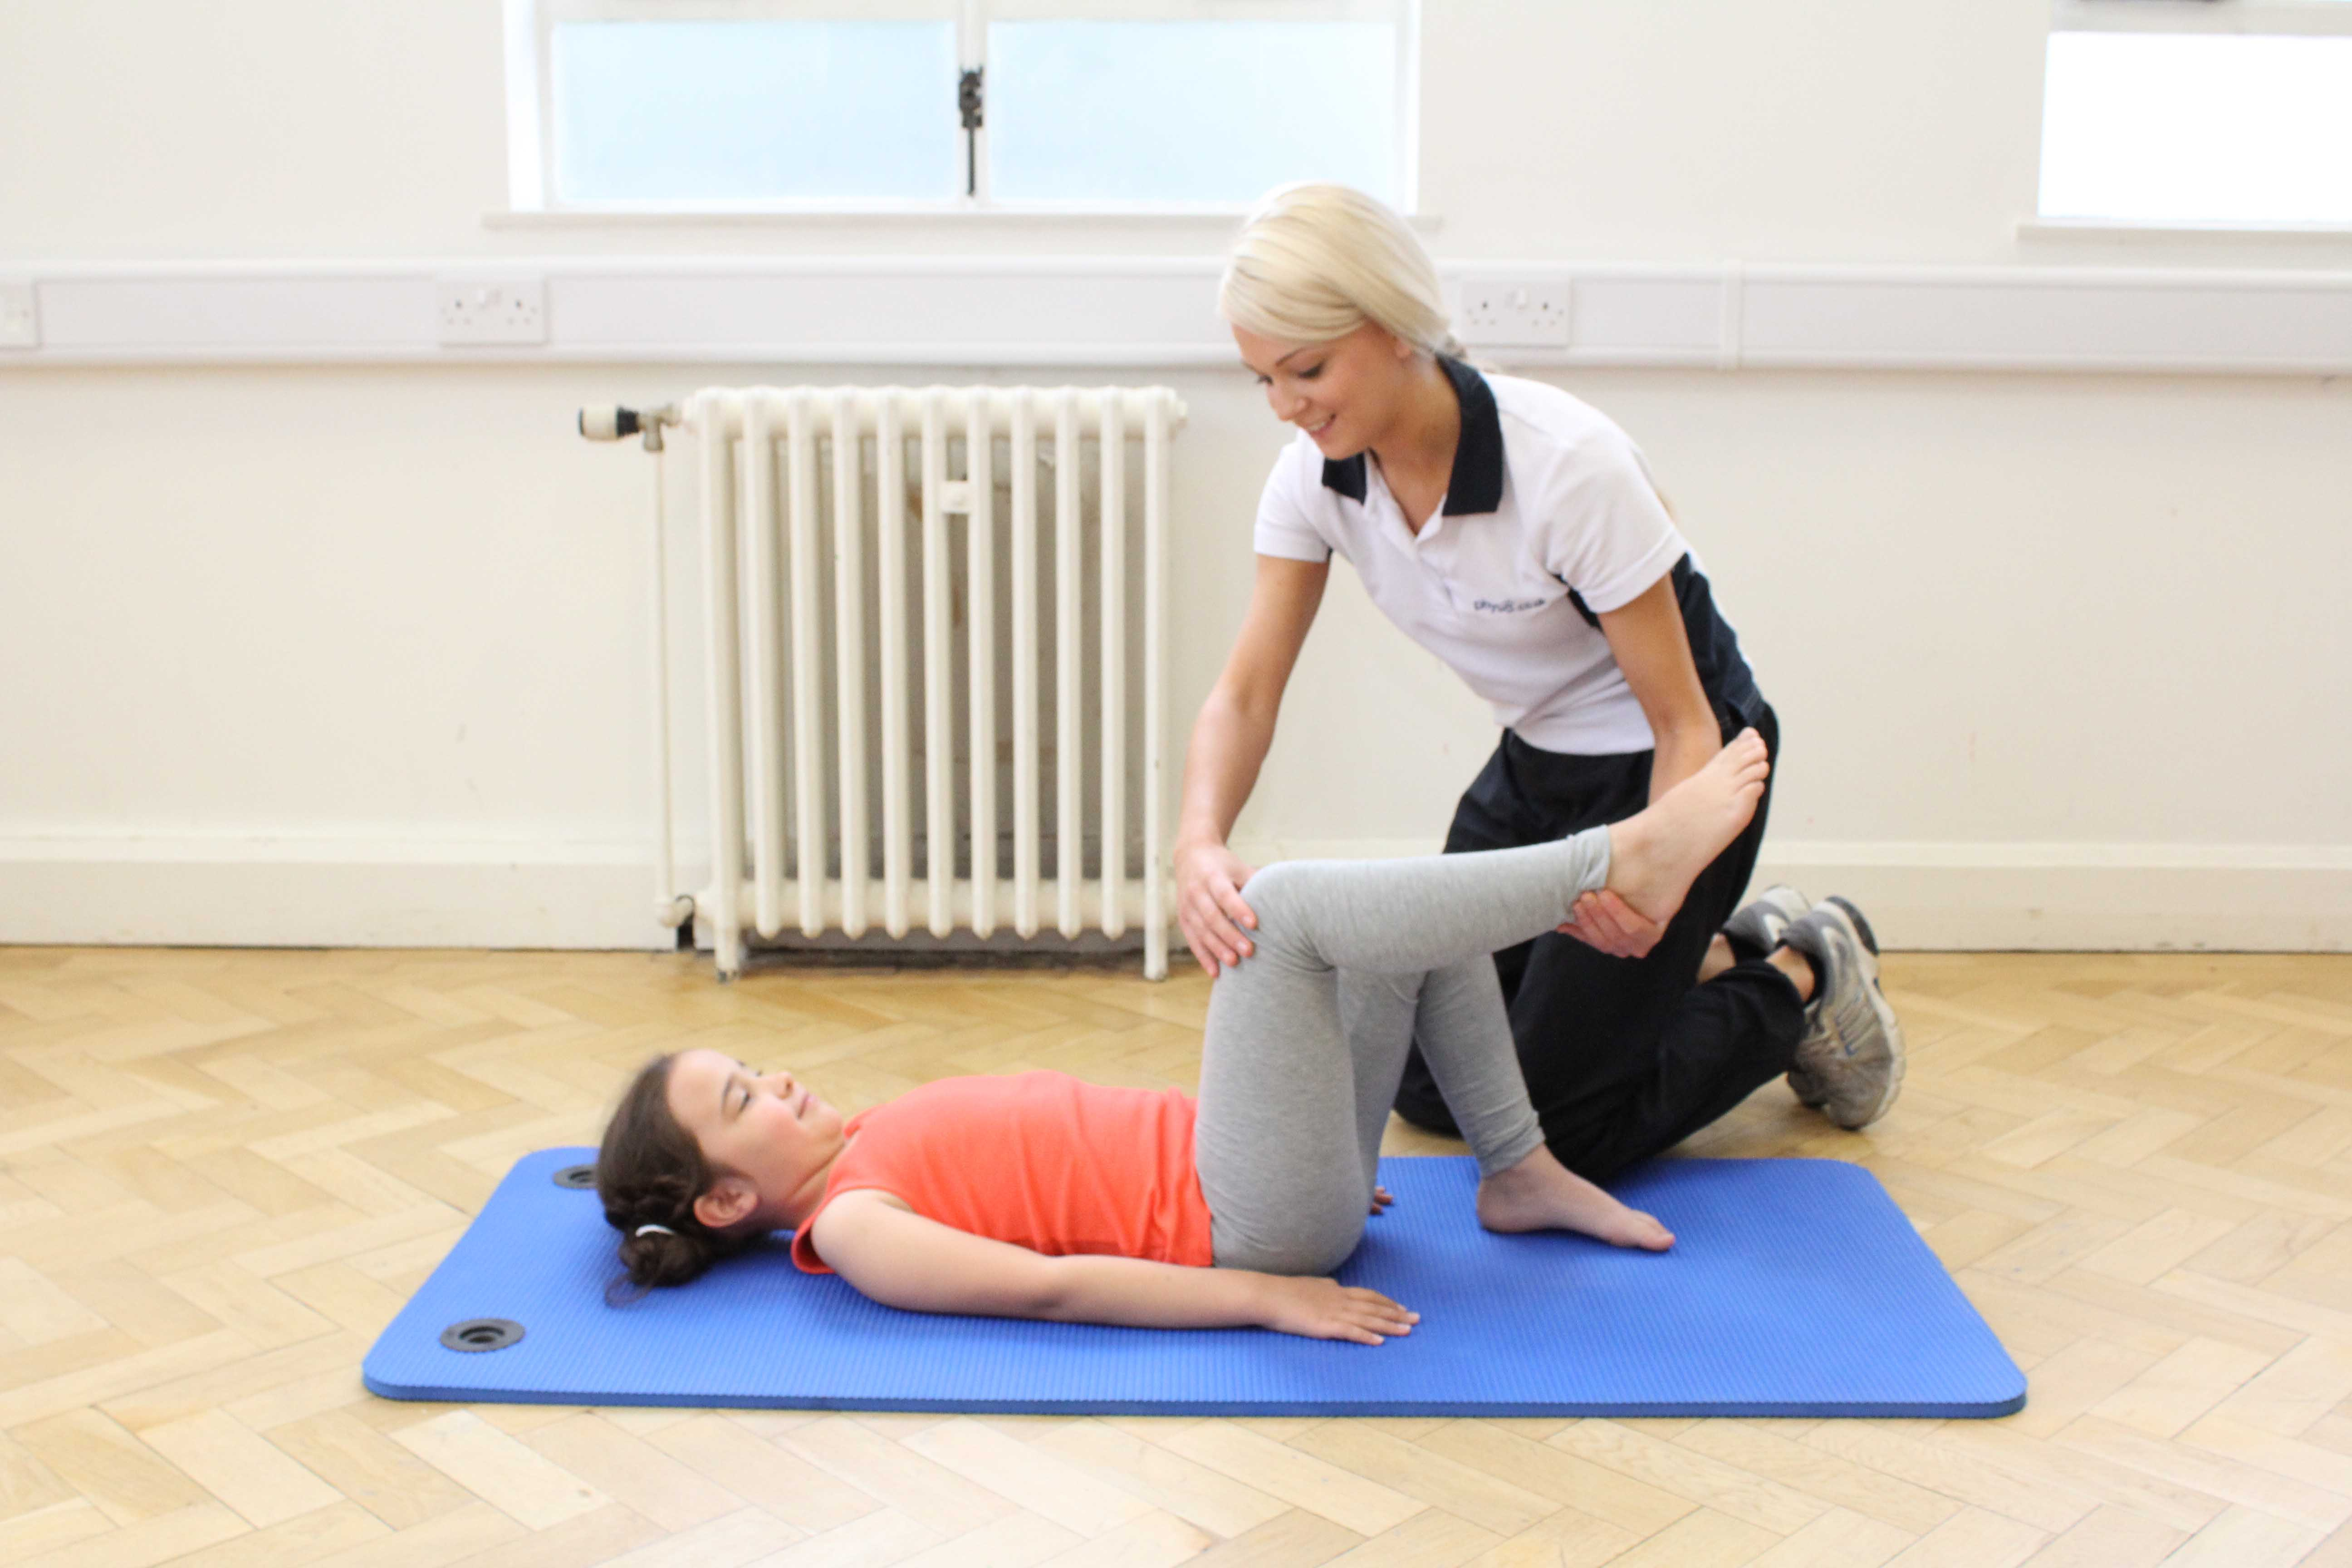 Stertching and strengthening exercises assisted by specialist paediatric physiotherapist